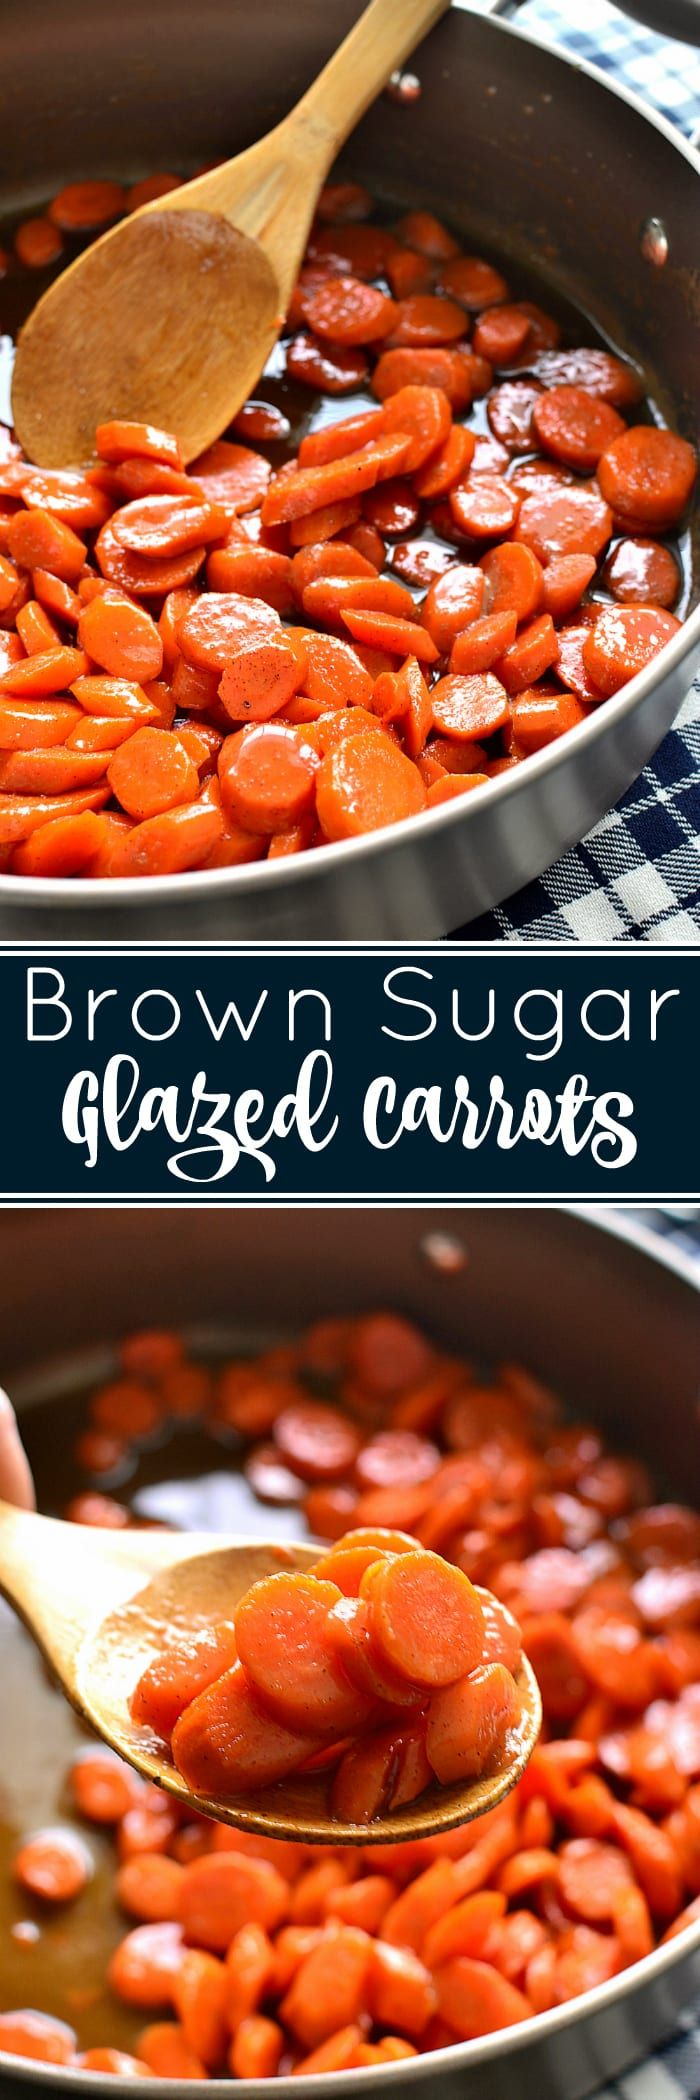 These Brown Sugar-Glazed Carrots take carrots to a whole new level! Made with just 4 delicious ingredients, they come together quickly and make the perfect holiday side dish!